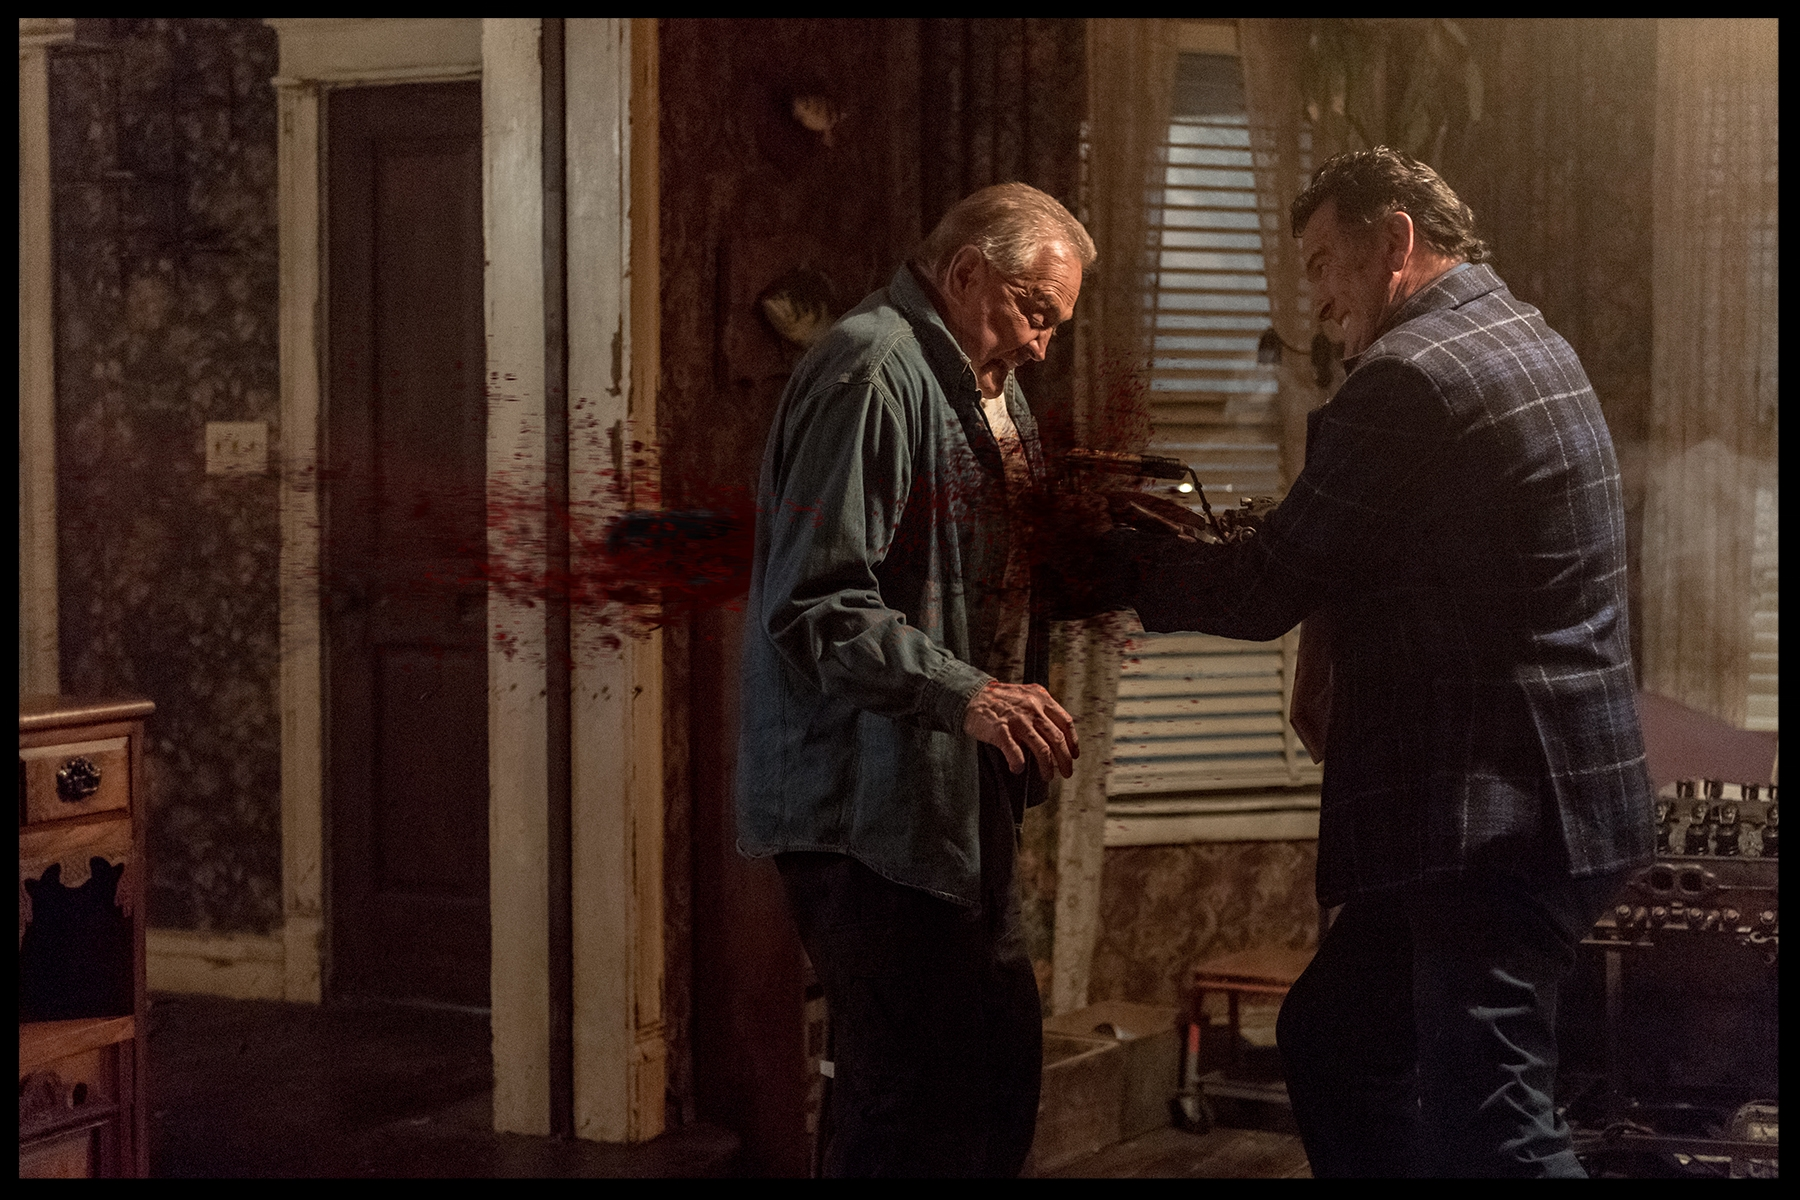 Lee Majors and Bruce Campbell - AVED 303